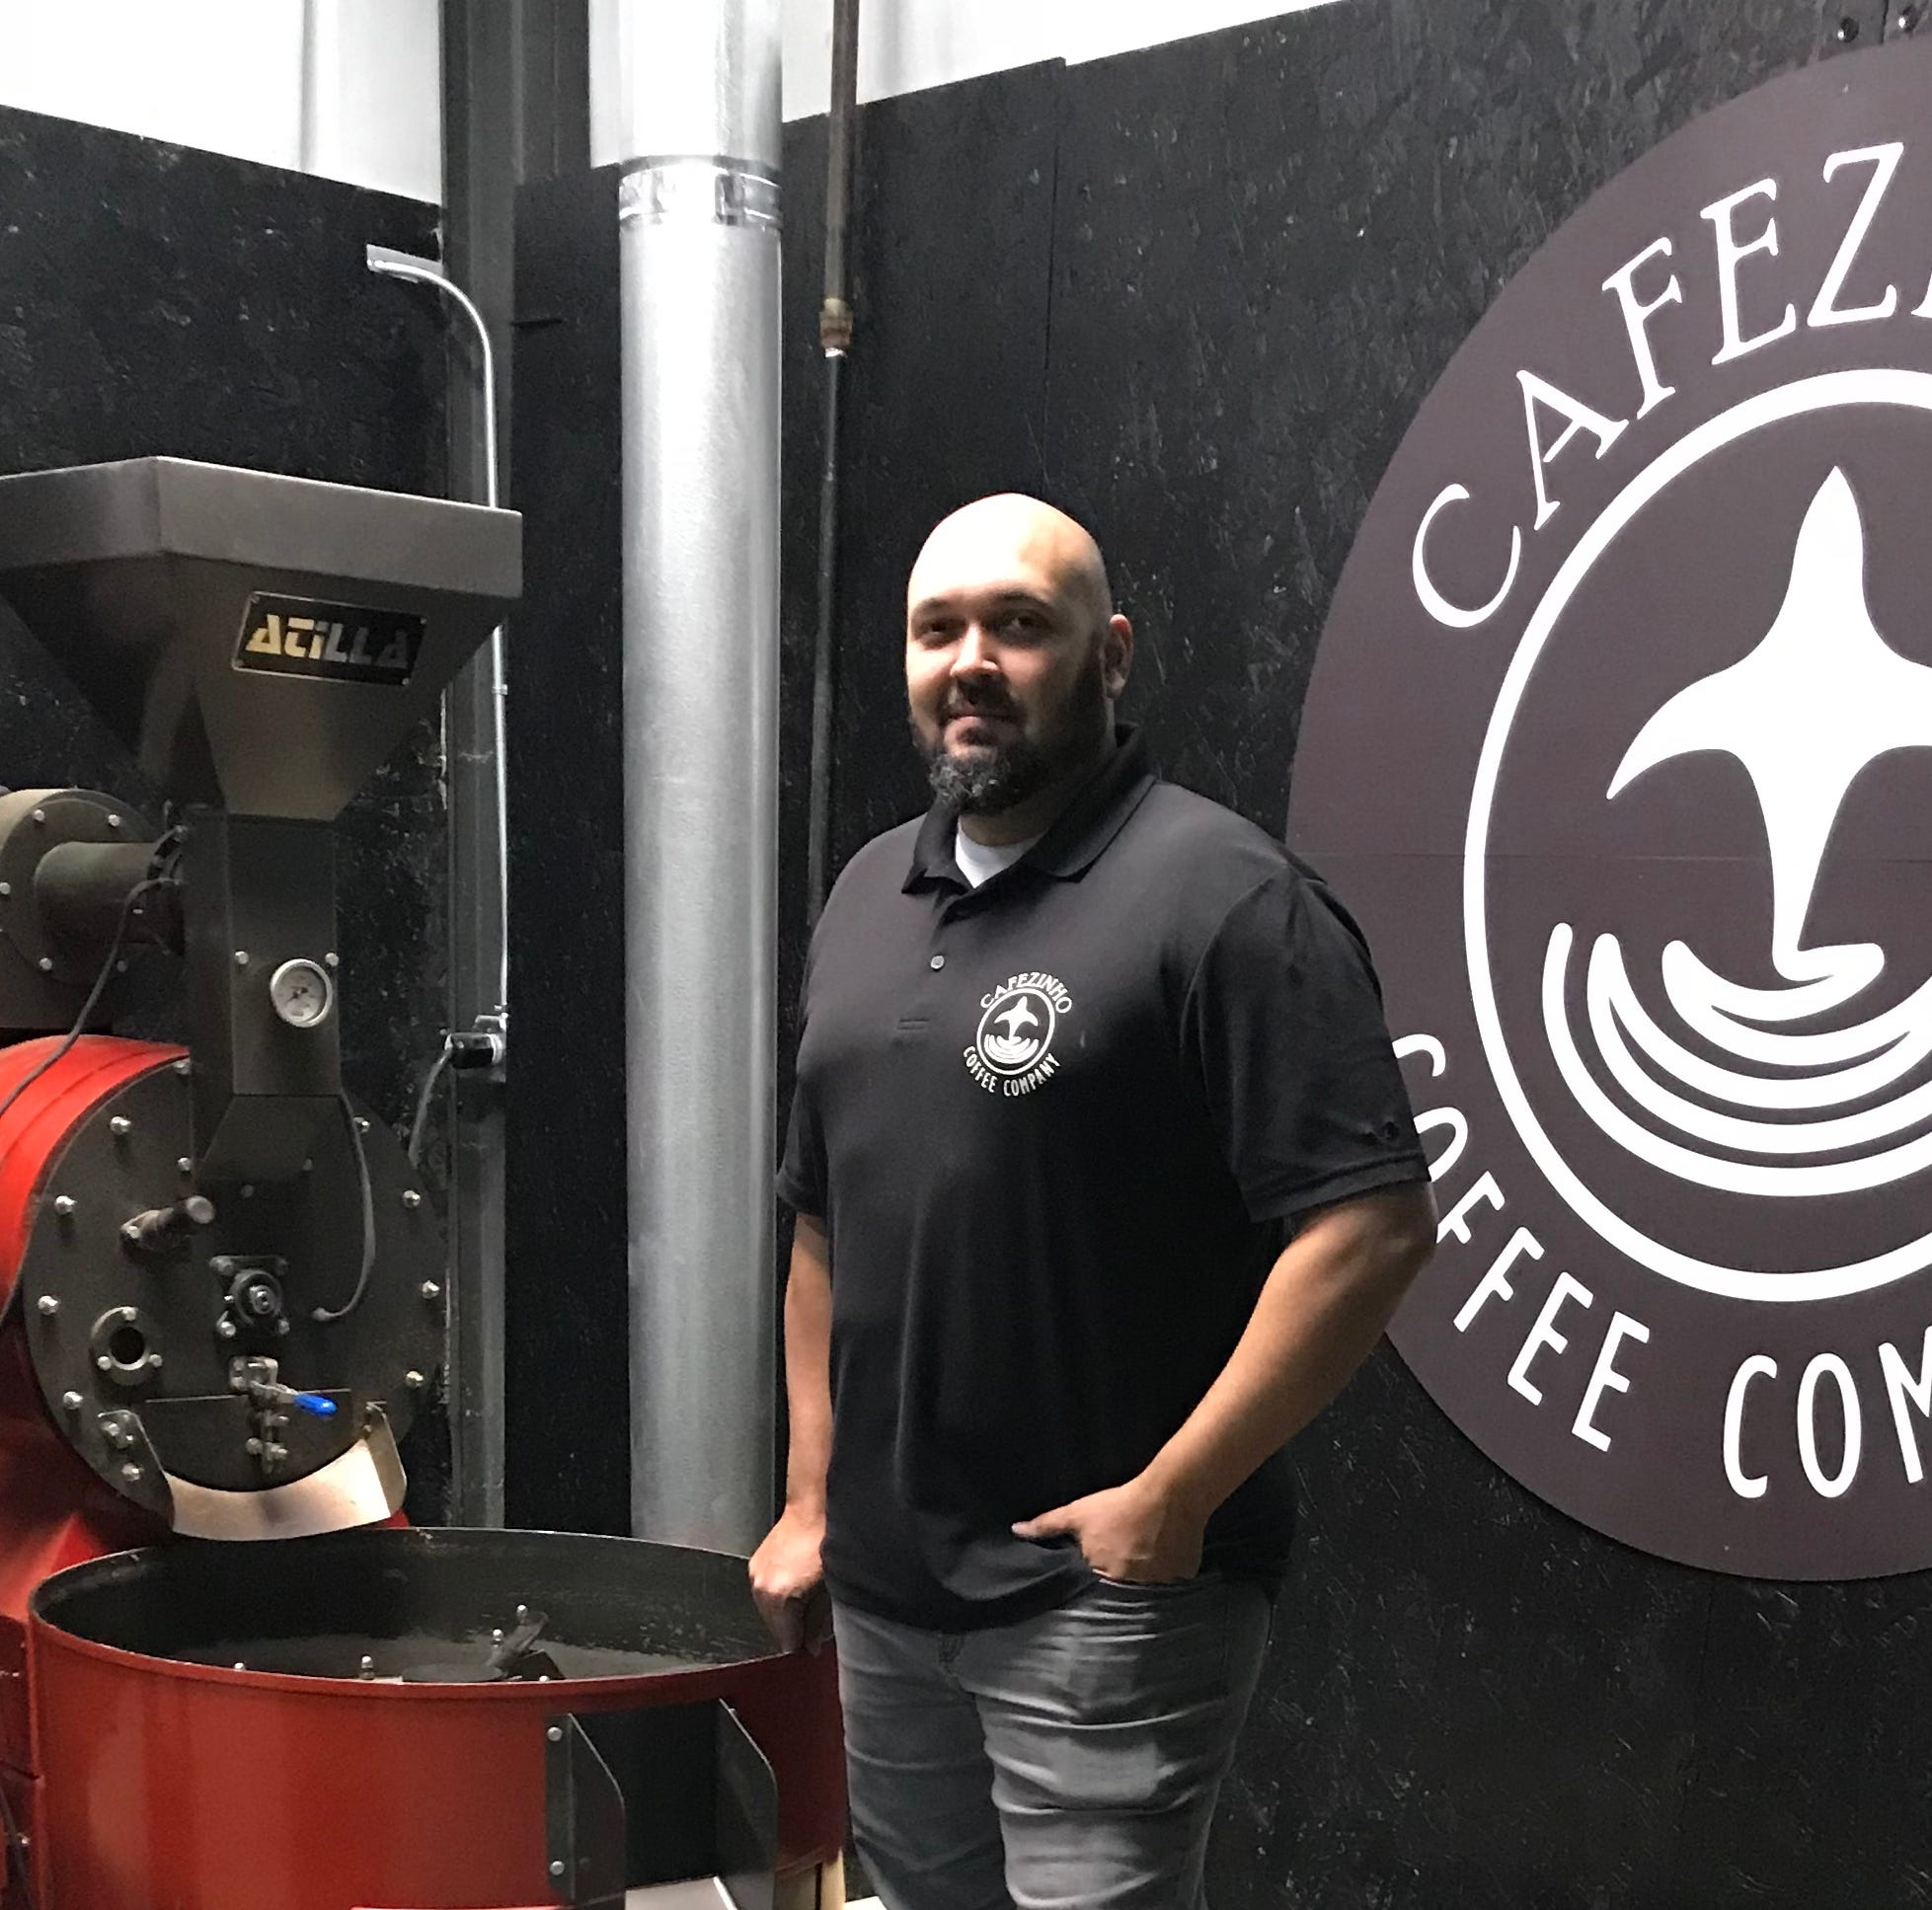 This Clinton coffee shop has a new way to serve up its brew